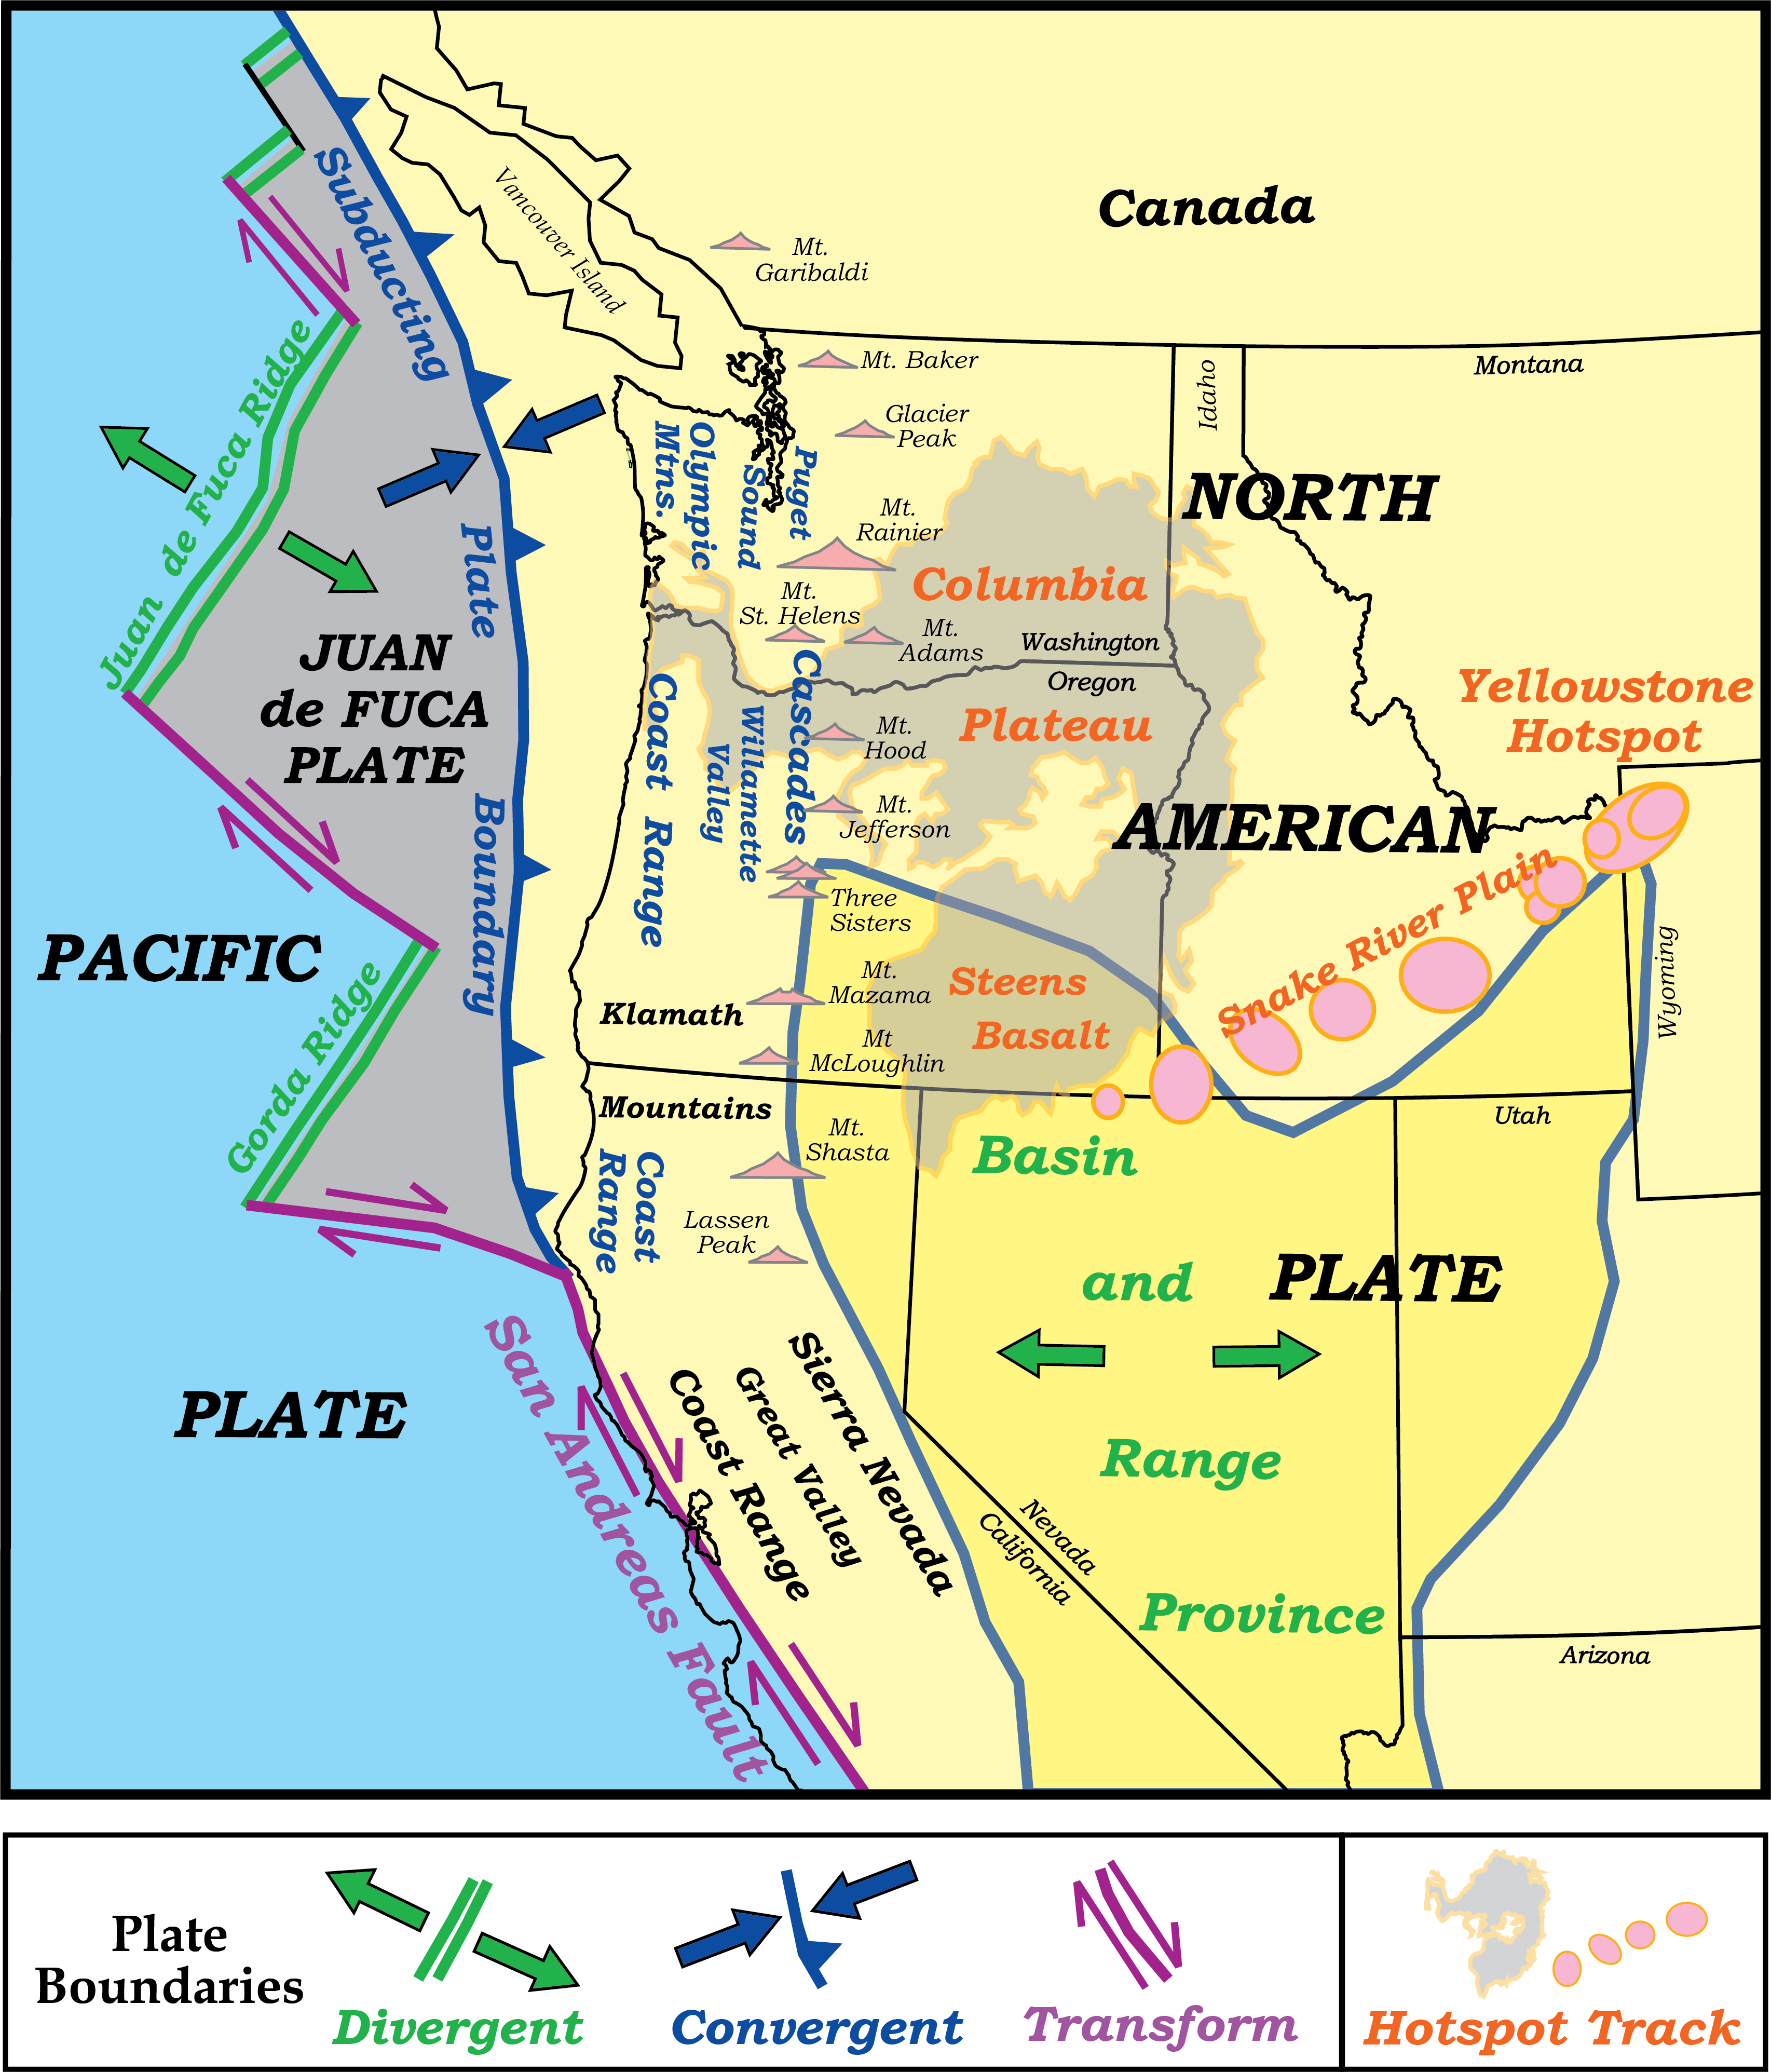 map of northwest us with multiple plates, volcanoes, and physiographic provinces labeled